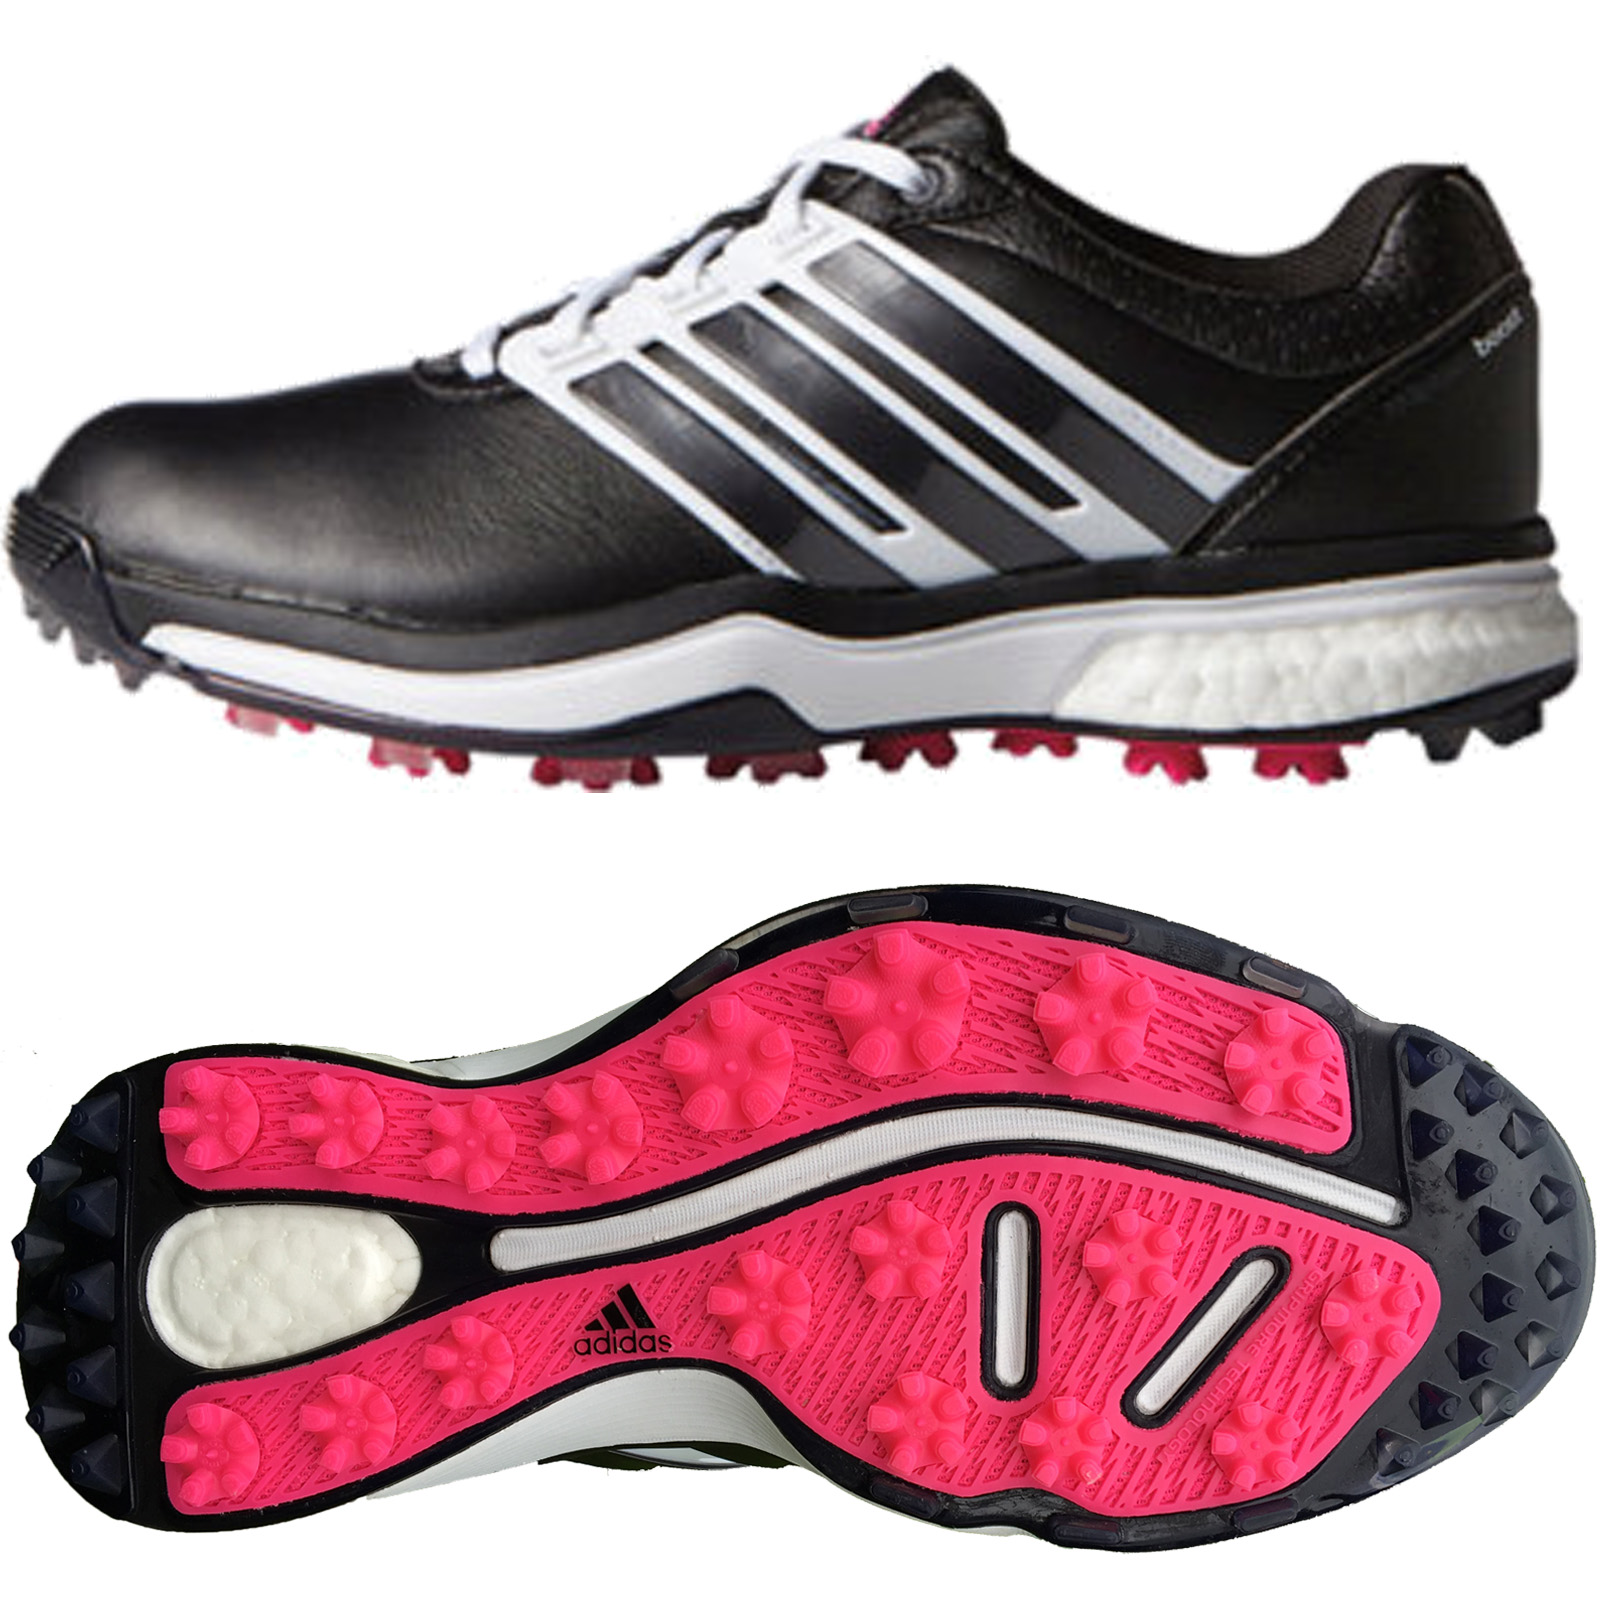 Adidas Ladies Golf Shoes Ebay